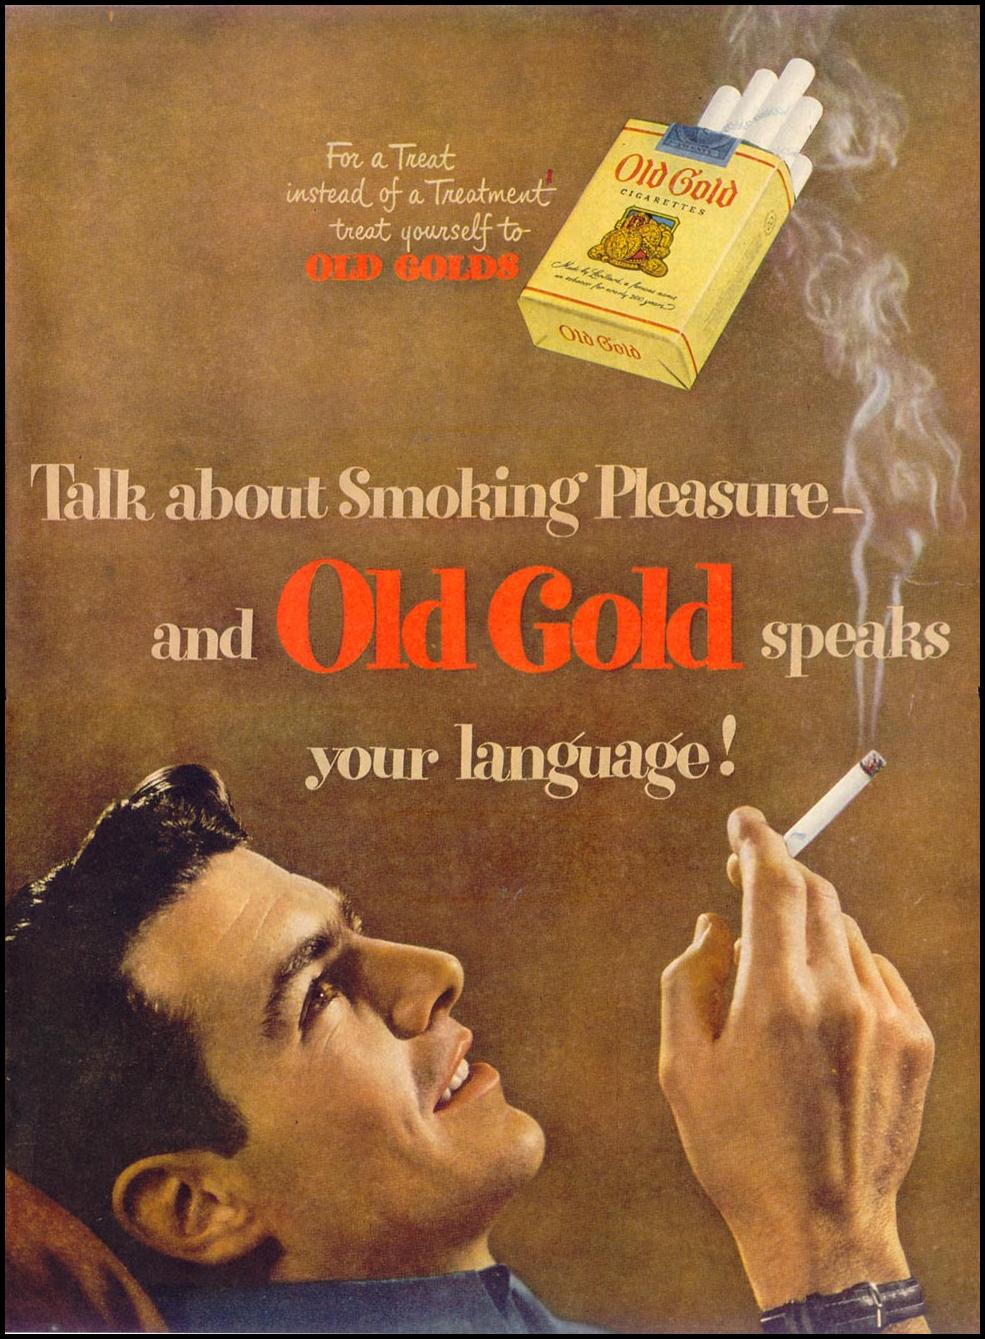 OLD GOLD CIGARETTES LIFE 11/15/1948